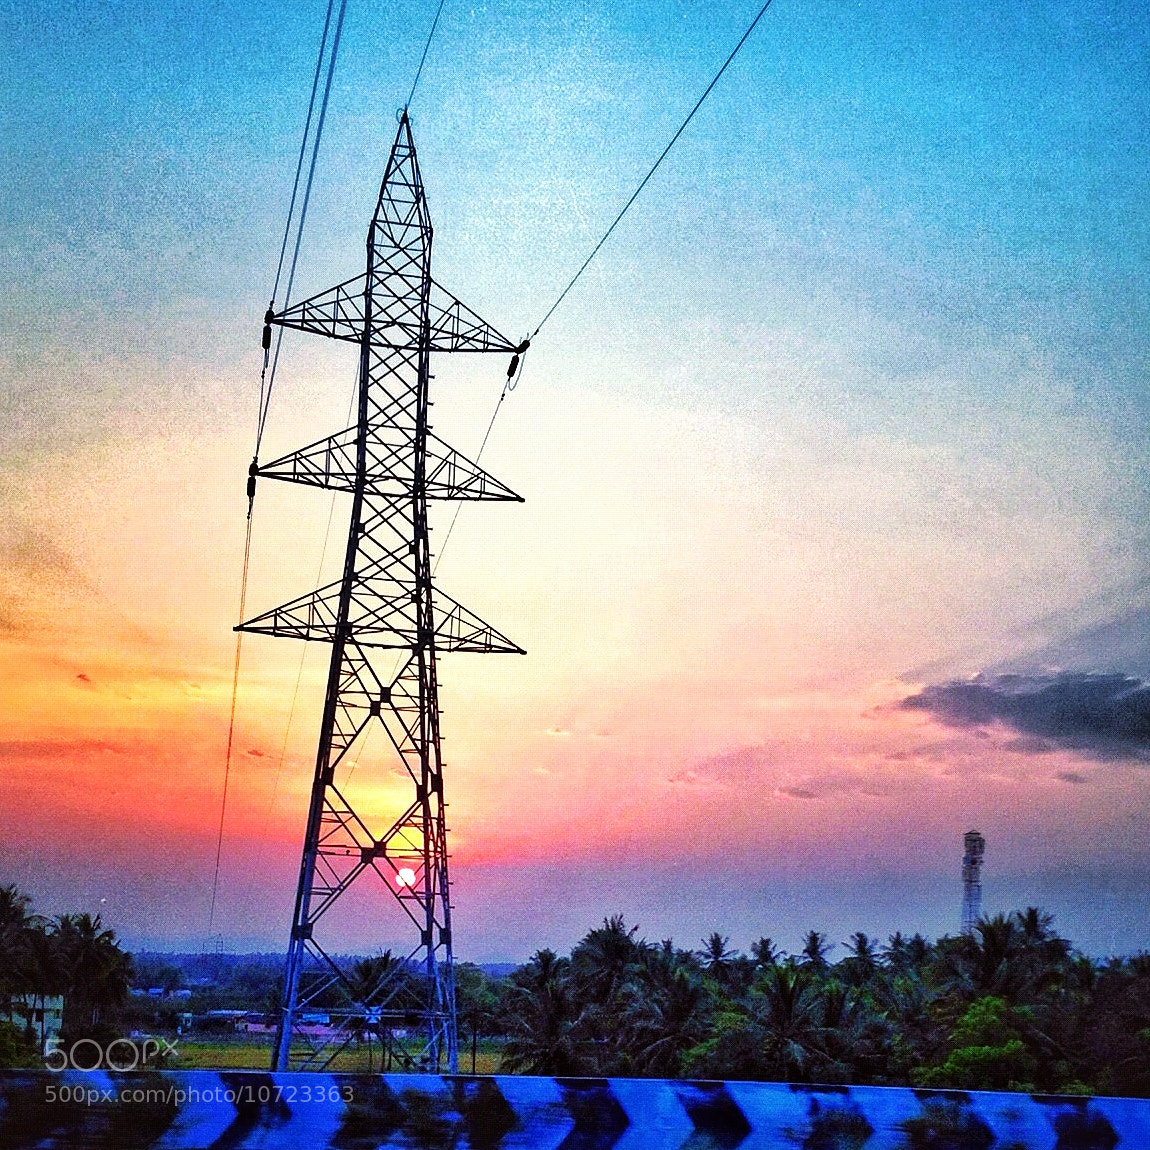 Photograph A Plethora of energy thrusting into the horizon by Surya  Sudhirr on 500px